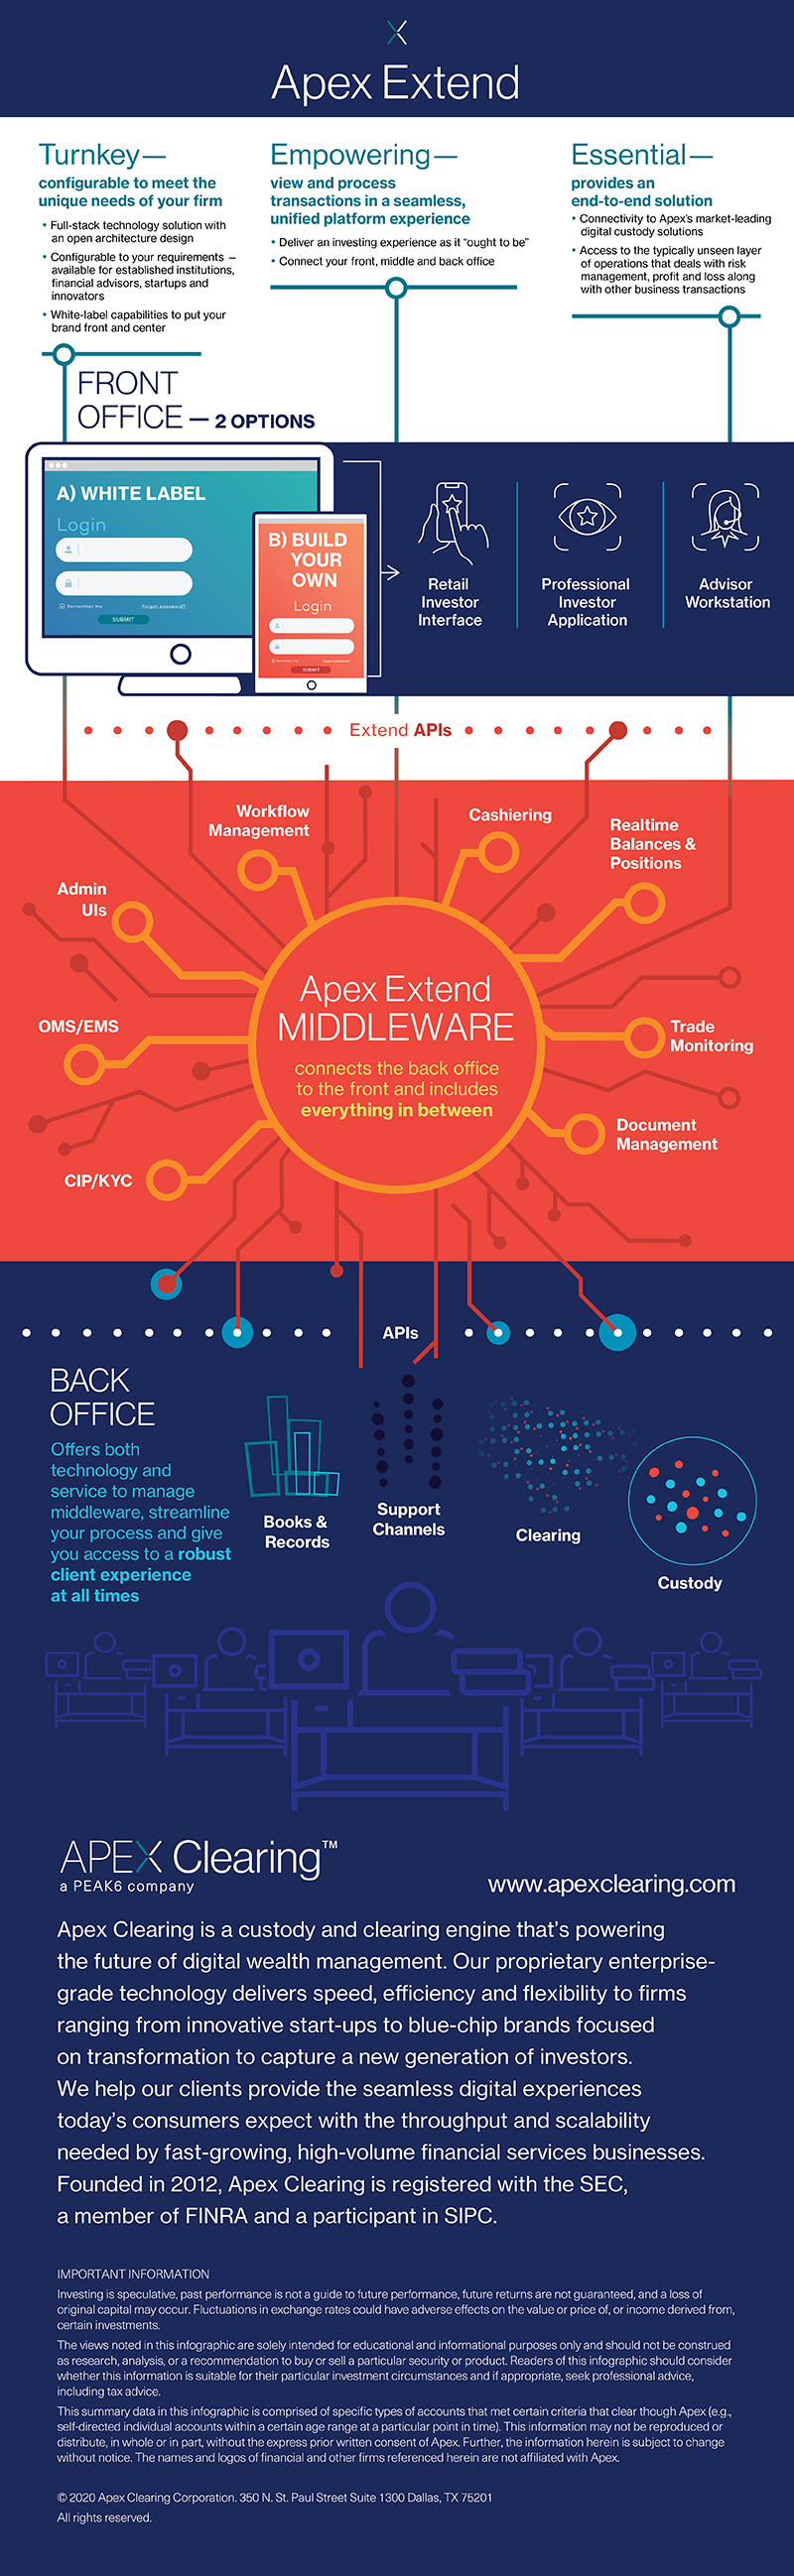 Apex Extend Infographic